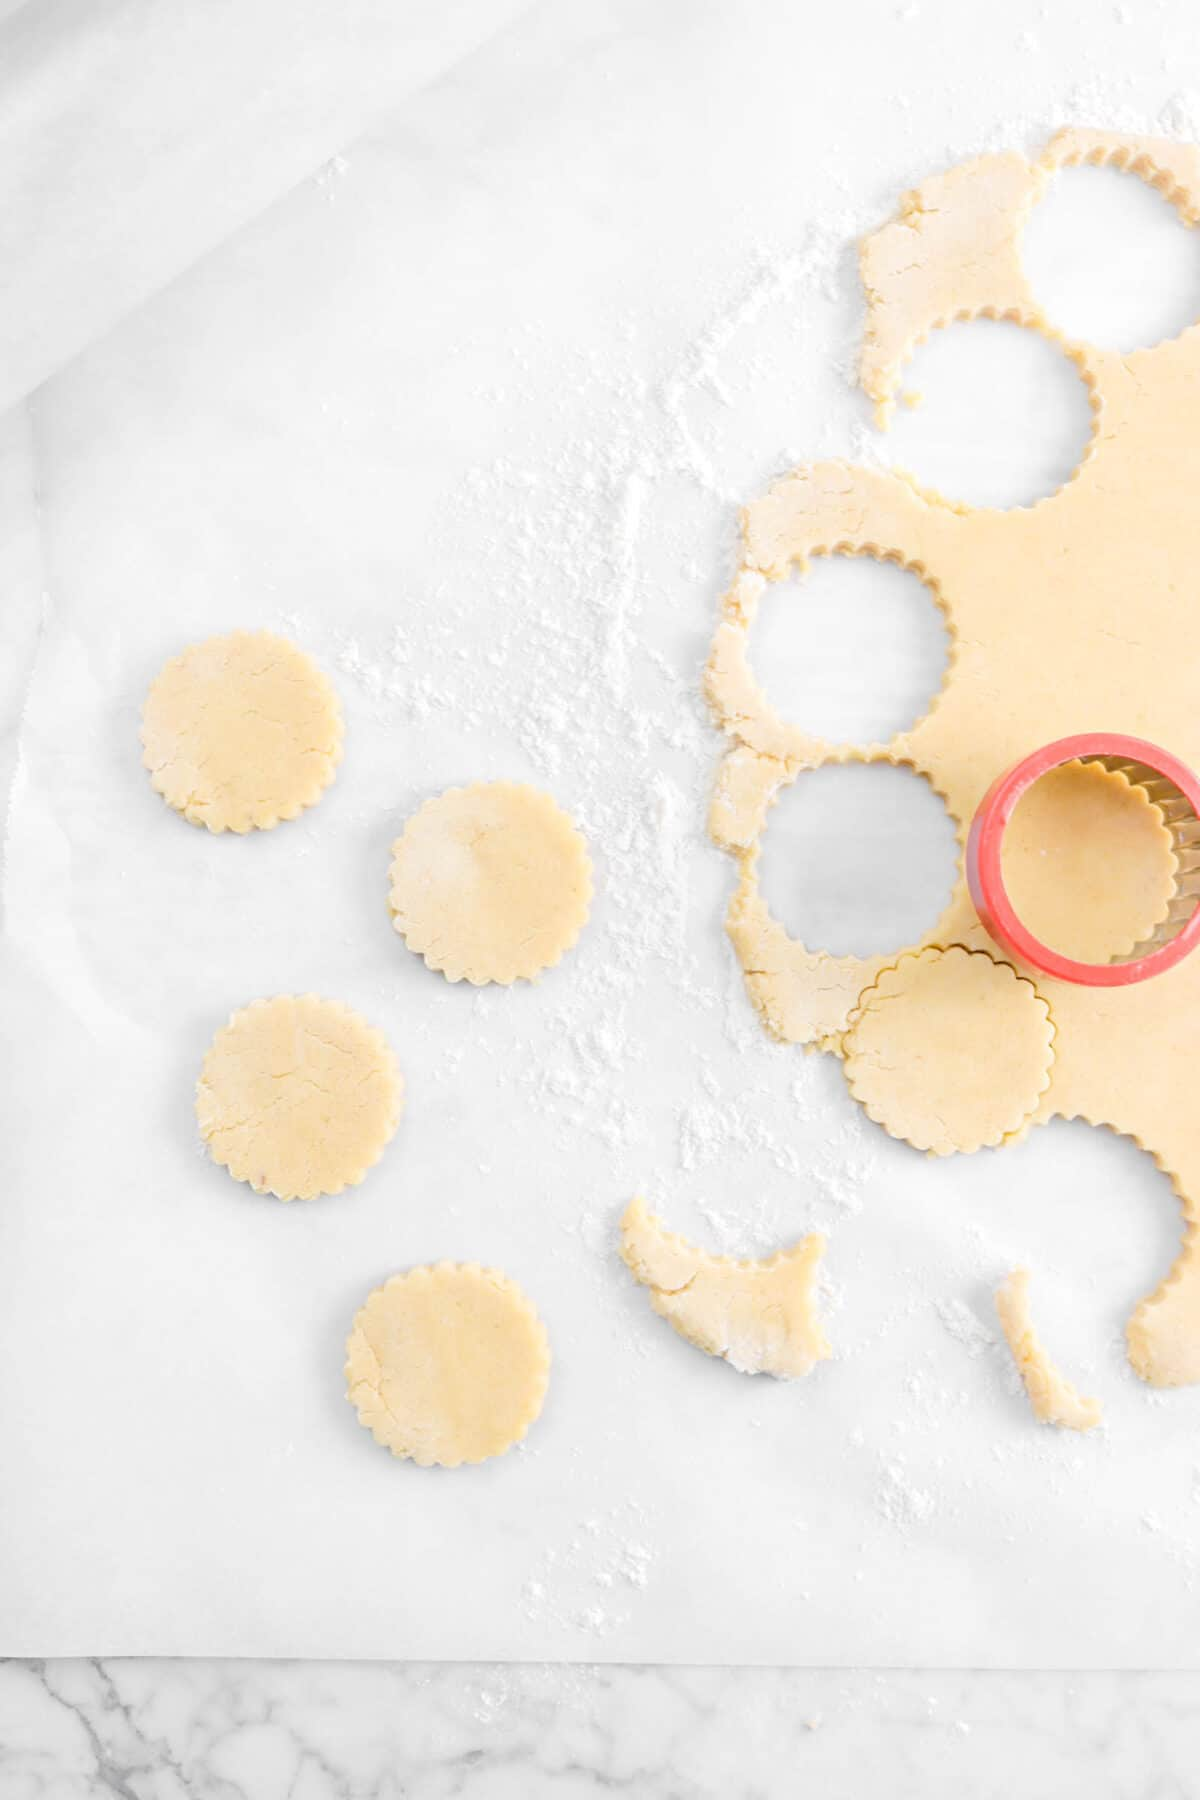 five cookies cut out of dough with cookie cutter on parchment